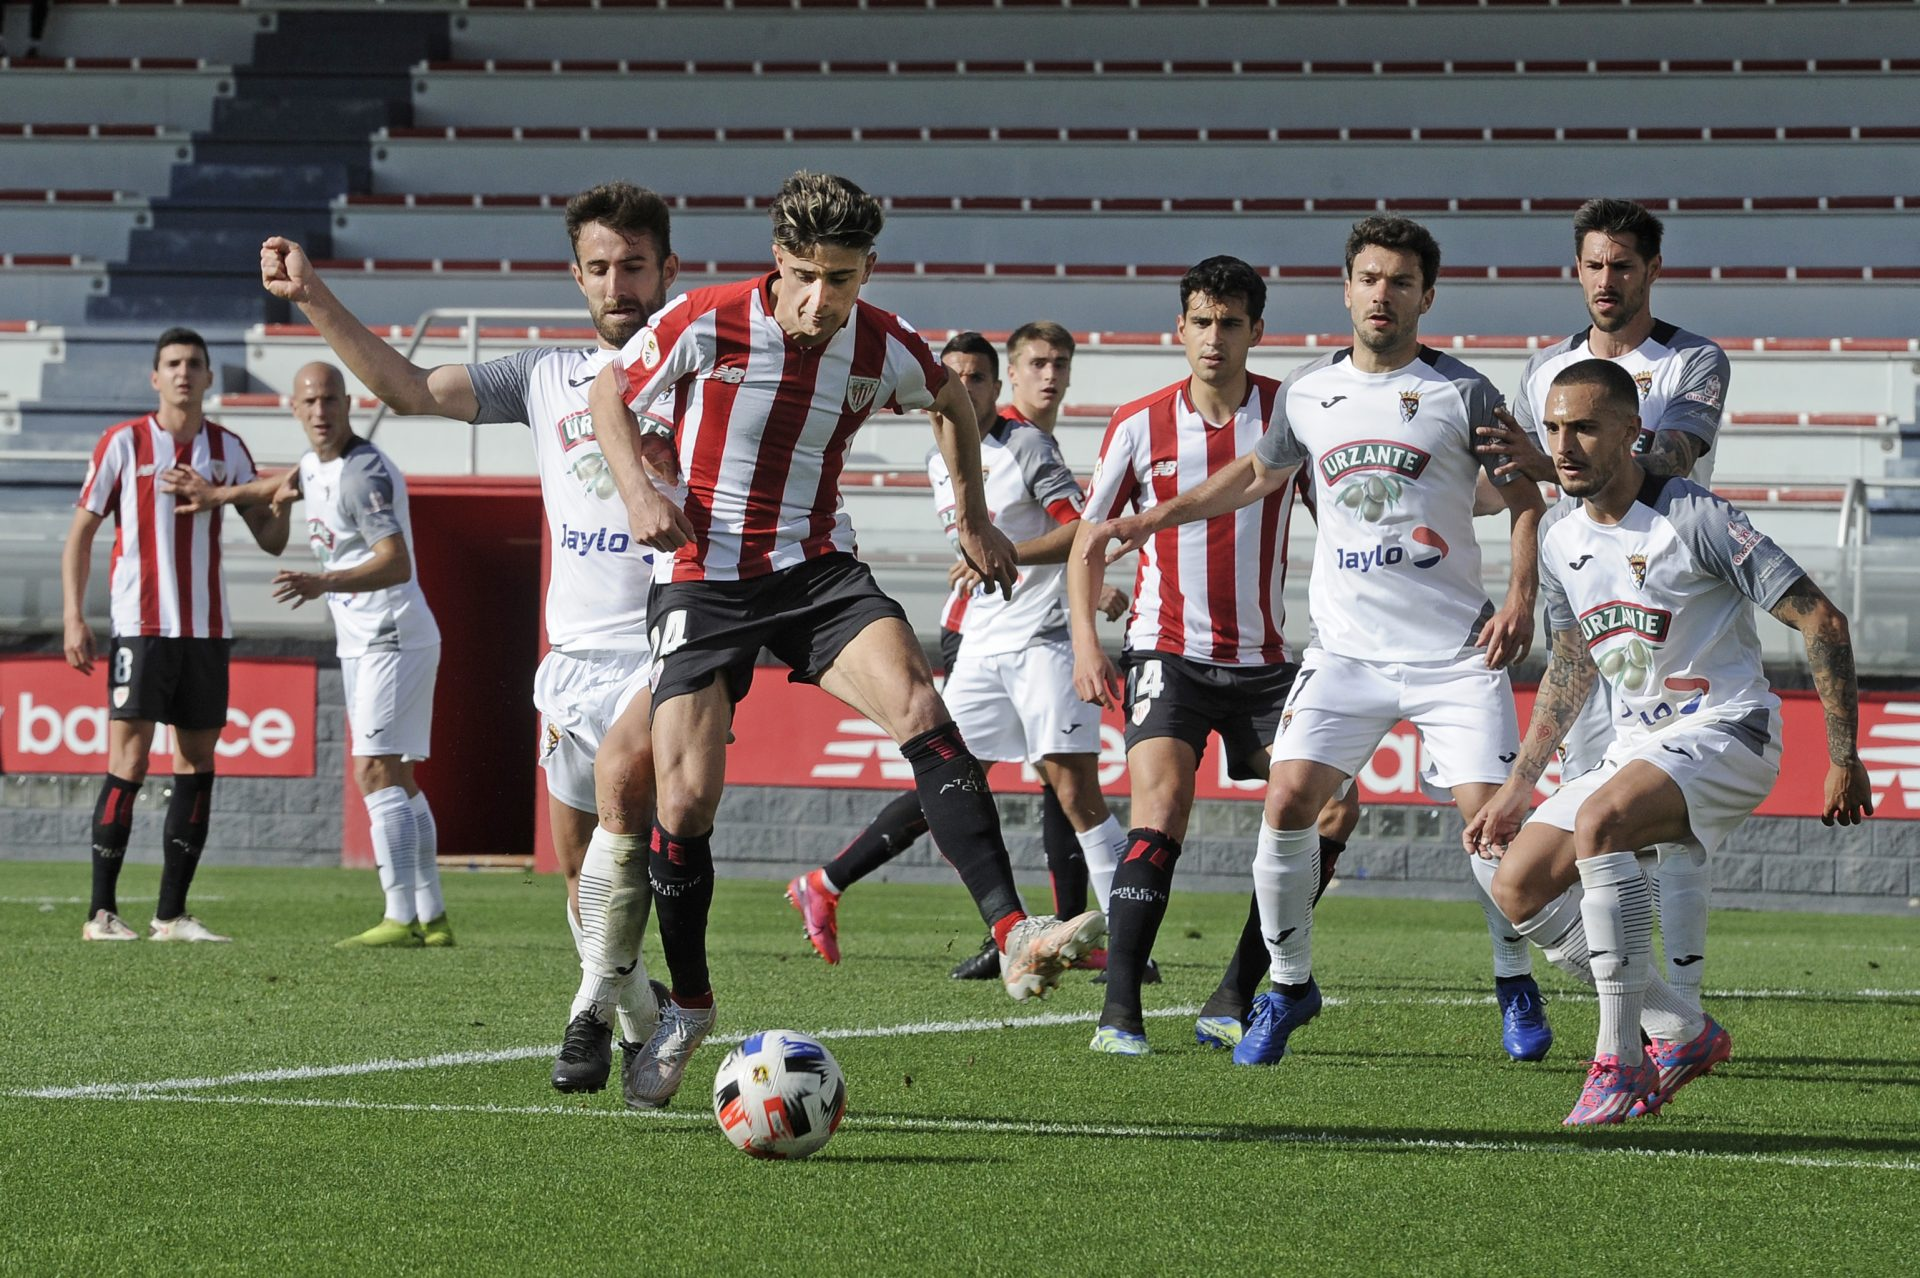 Bilbao Athletic – CD Tudelano | 2ª Fase | M5 – 2ªB